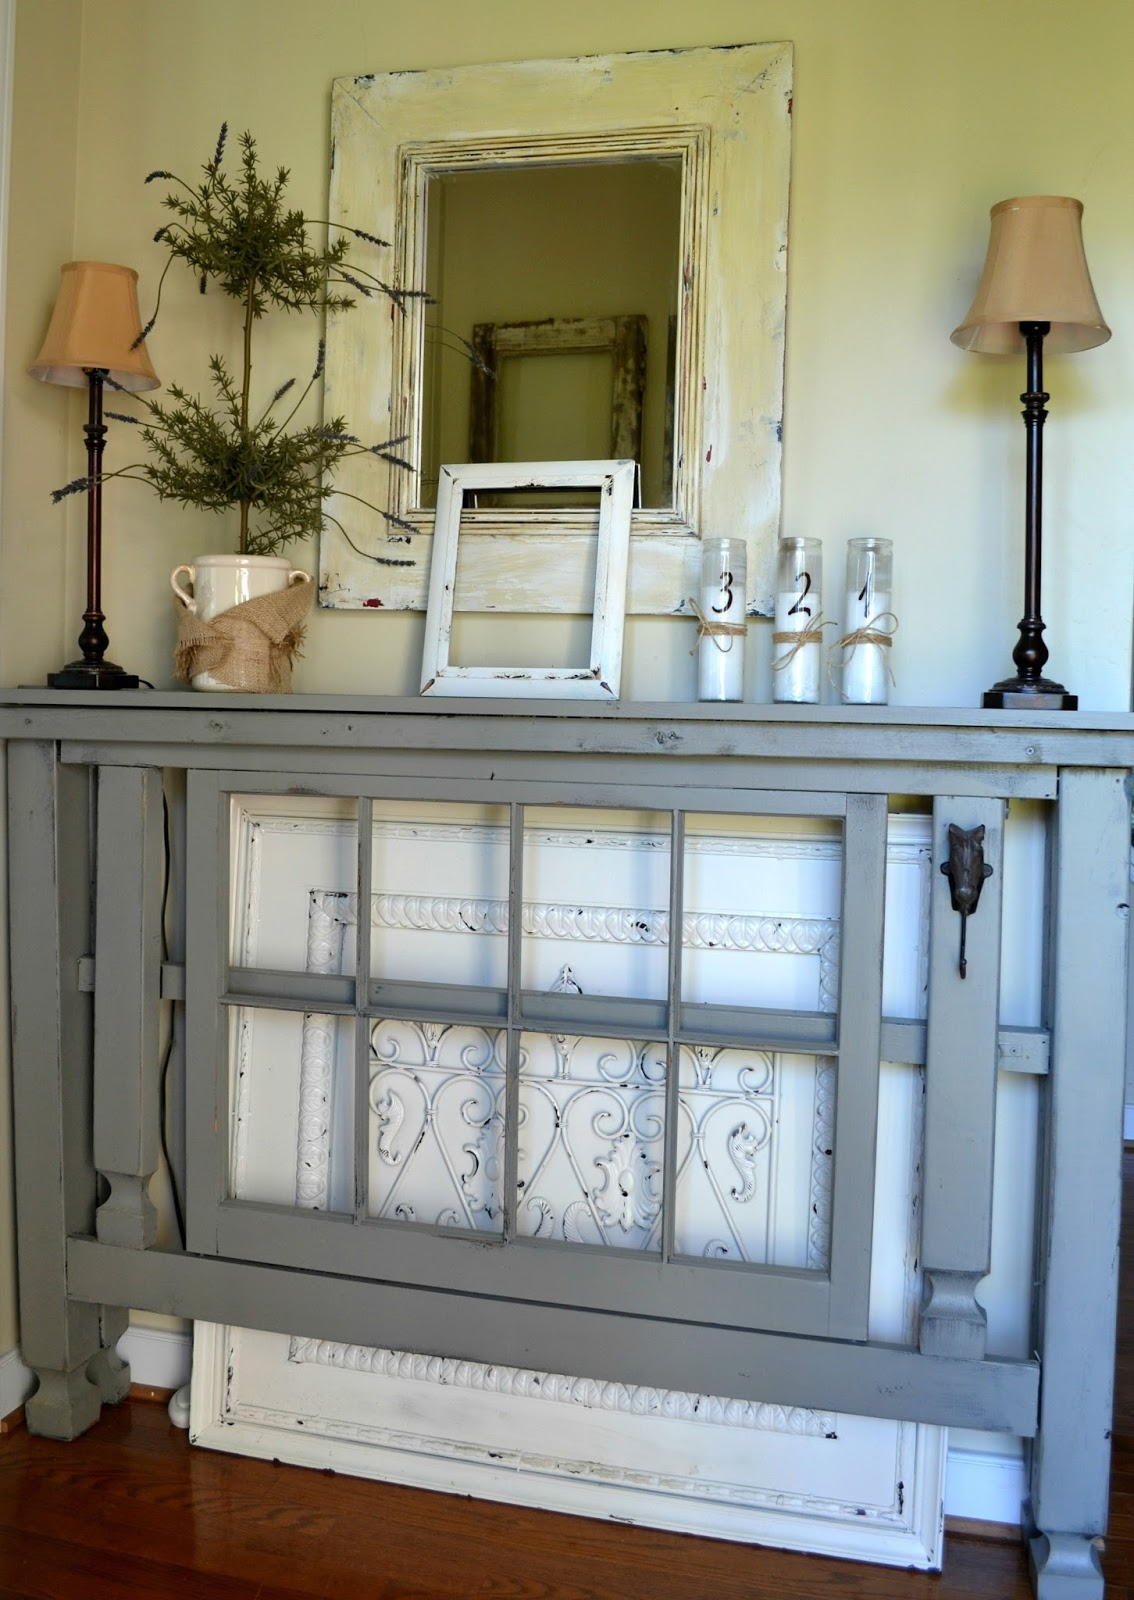 Foyer Light Over Table : Down to earth style foyer storage for shoes bags and keys